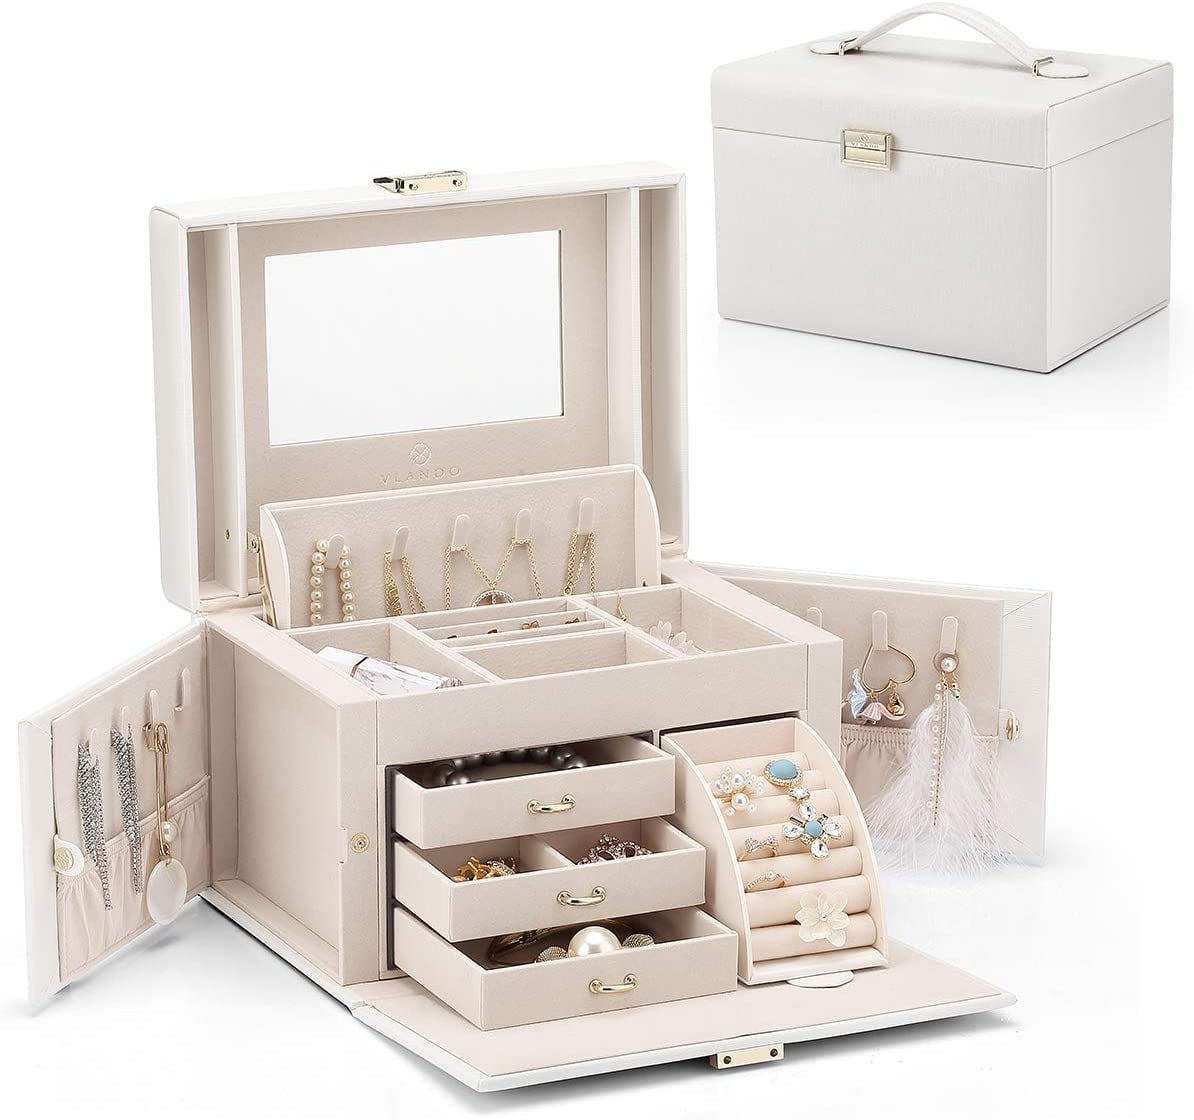 Homeanda Jewellery Box PU Leather Jewelry Case and Display Case 2 Layers with Mirror for Rings Earrings Necklace,Bracelets Organizer Jewelry Storage Boxes